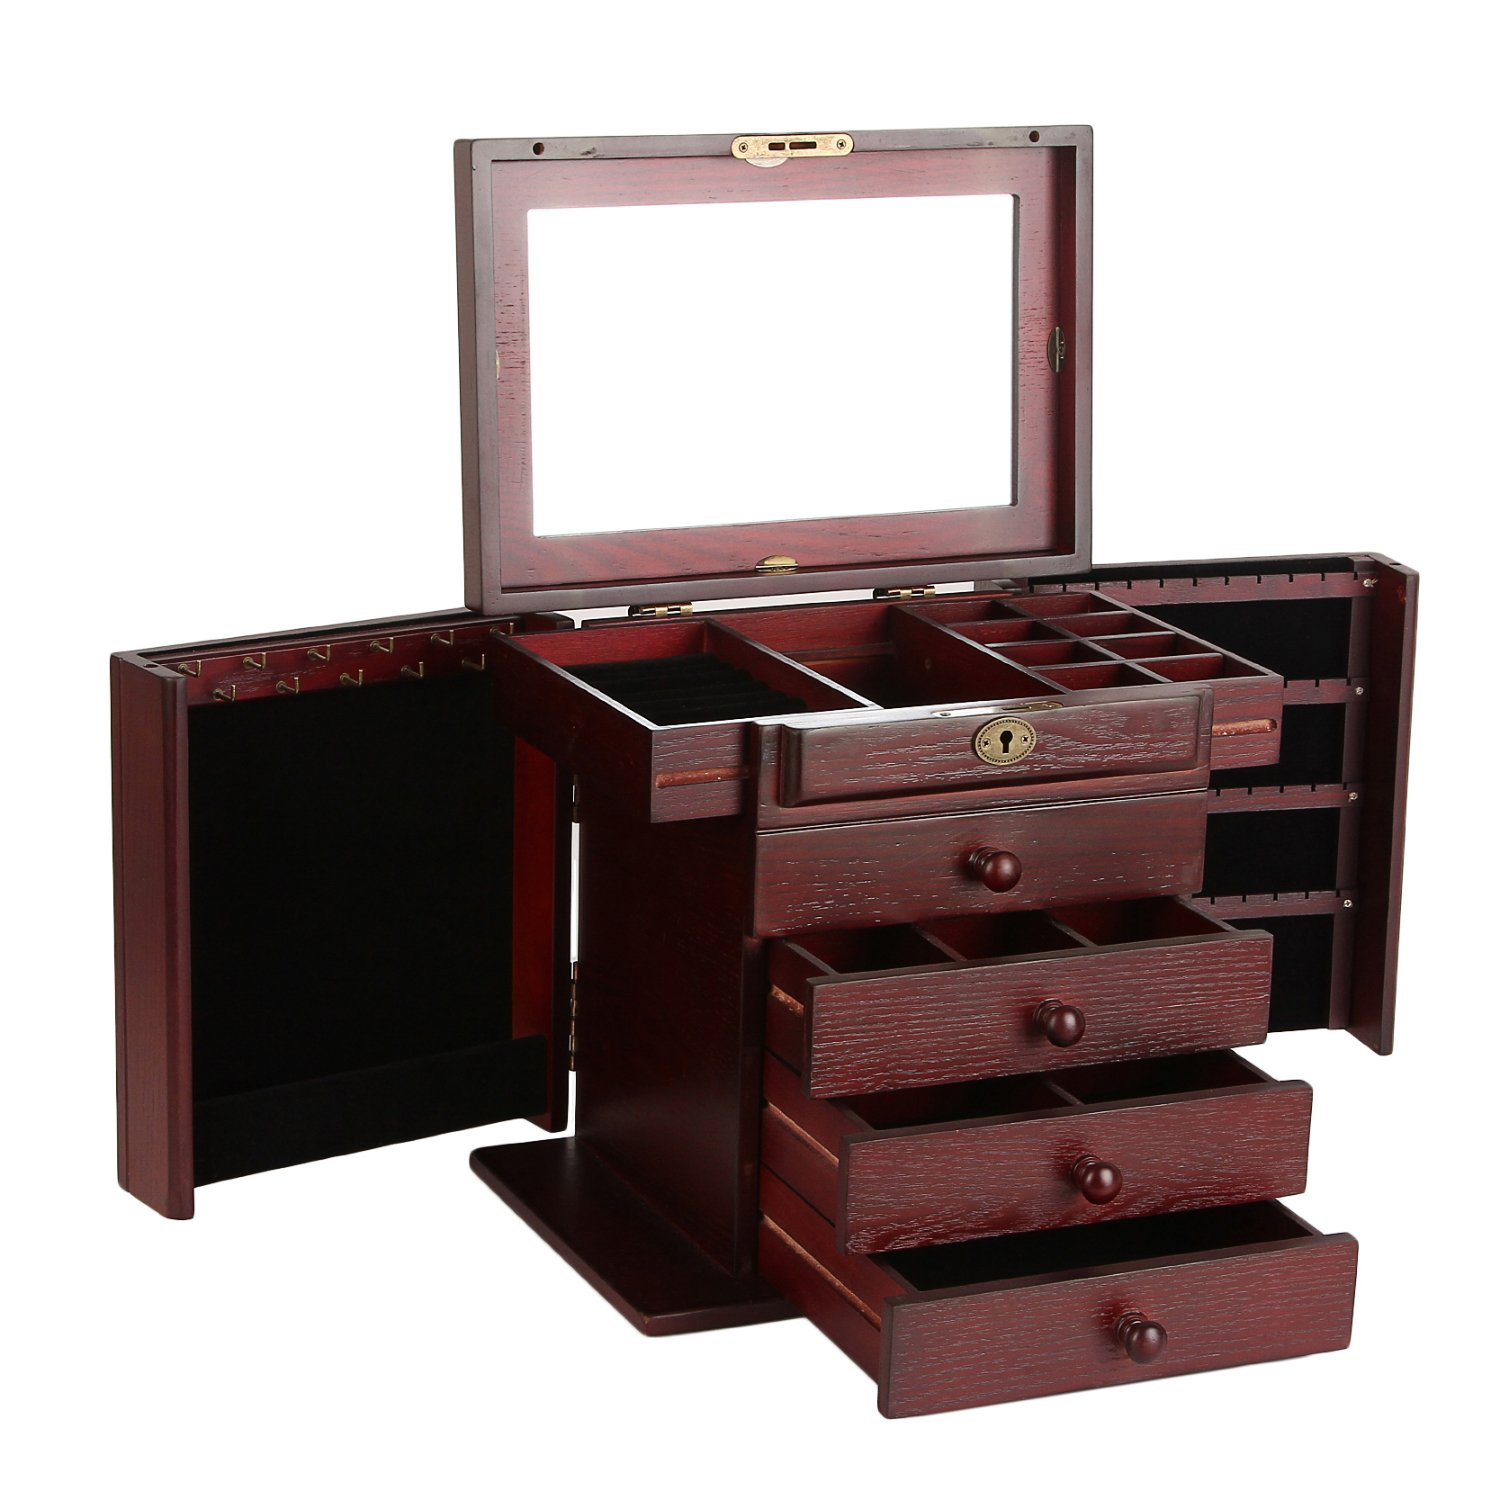 Extra Large Wooden Jewelry Box / Jewel Case Cabinet Armoire Ring Necklacel Gift Storage Box Organizer Mg002 (WINERED)